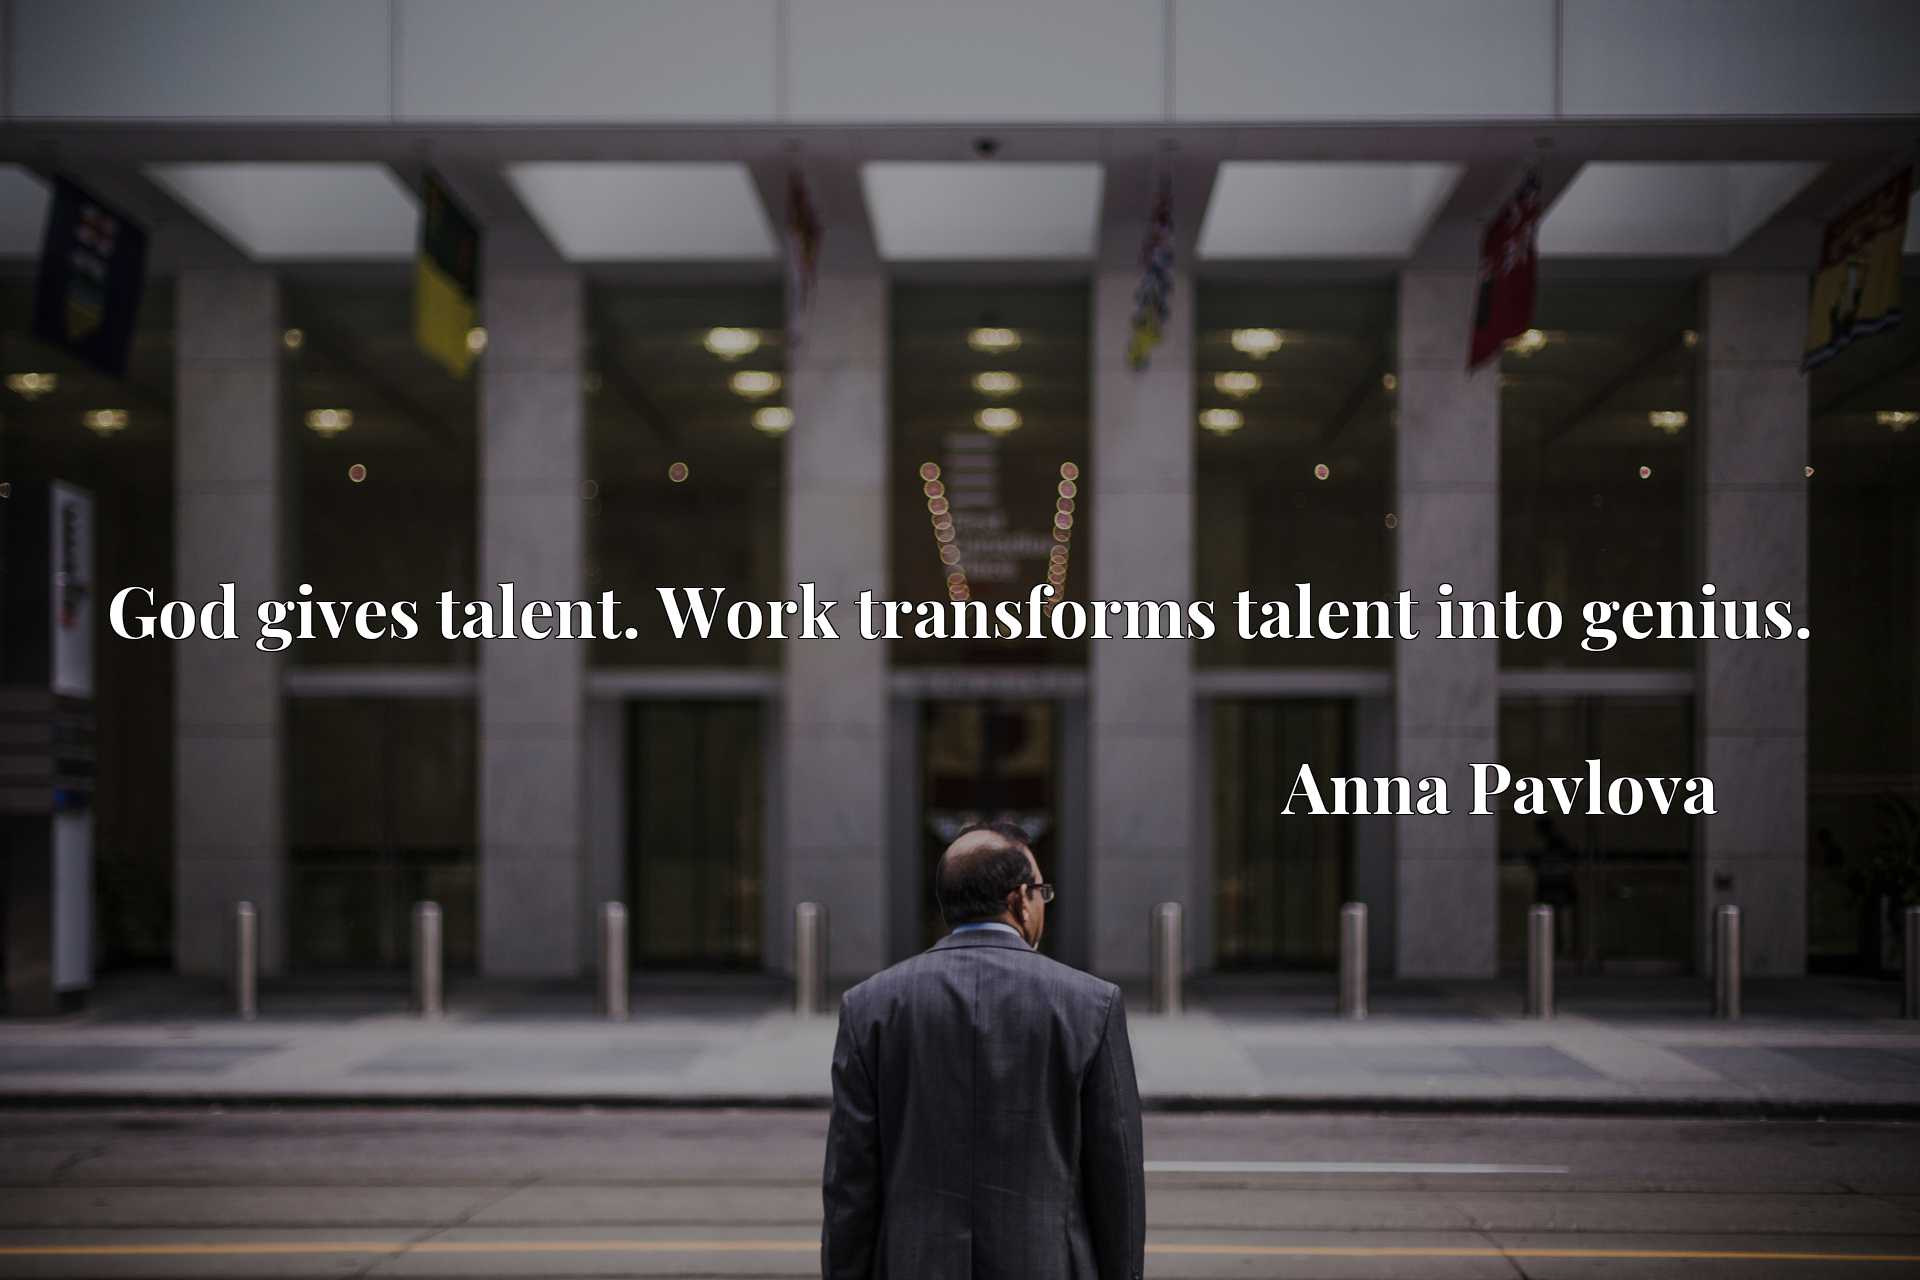 God gives talent. Work transforms talent into genius.